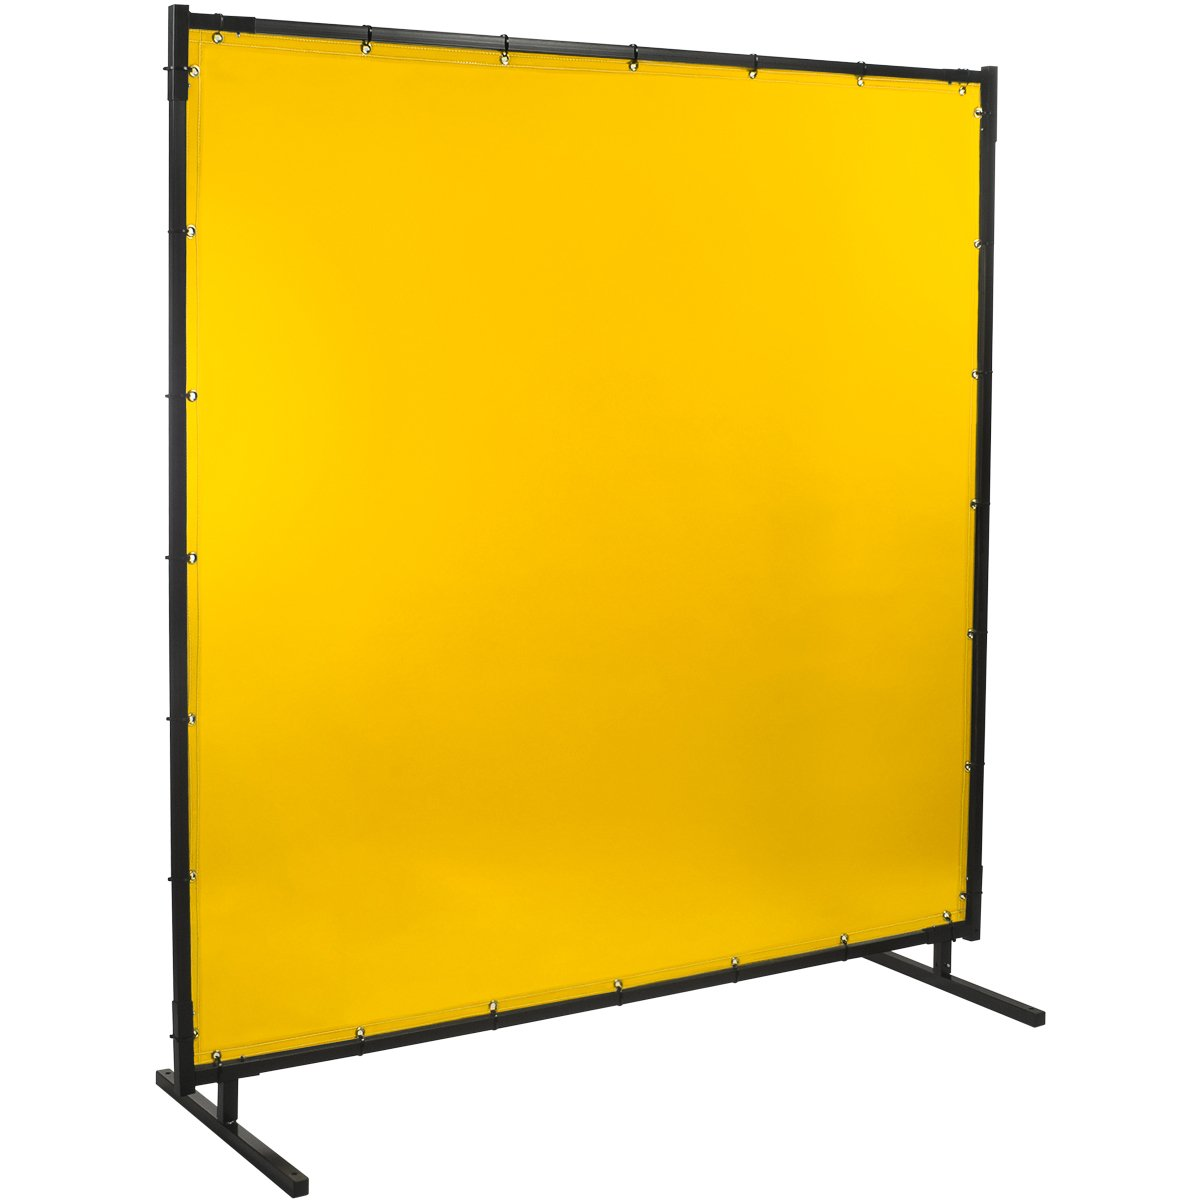 Steiner 534HD-6X8 Protect-O-Screen HD Welding Screen with Flame Retardant 14 Mil Tinted Transparent Vinyl Curtain, Yellow, 6' x 8' 6' x 8' ERB